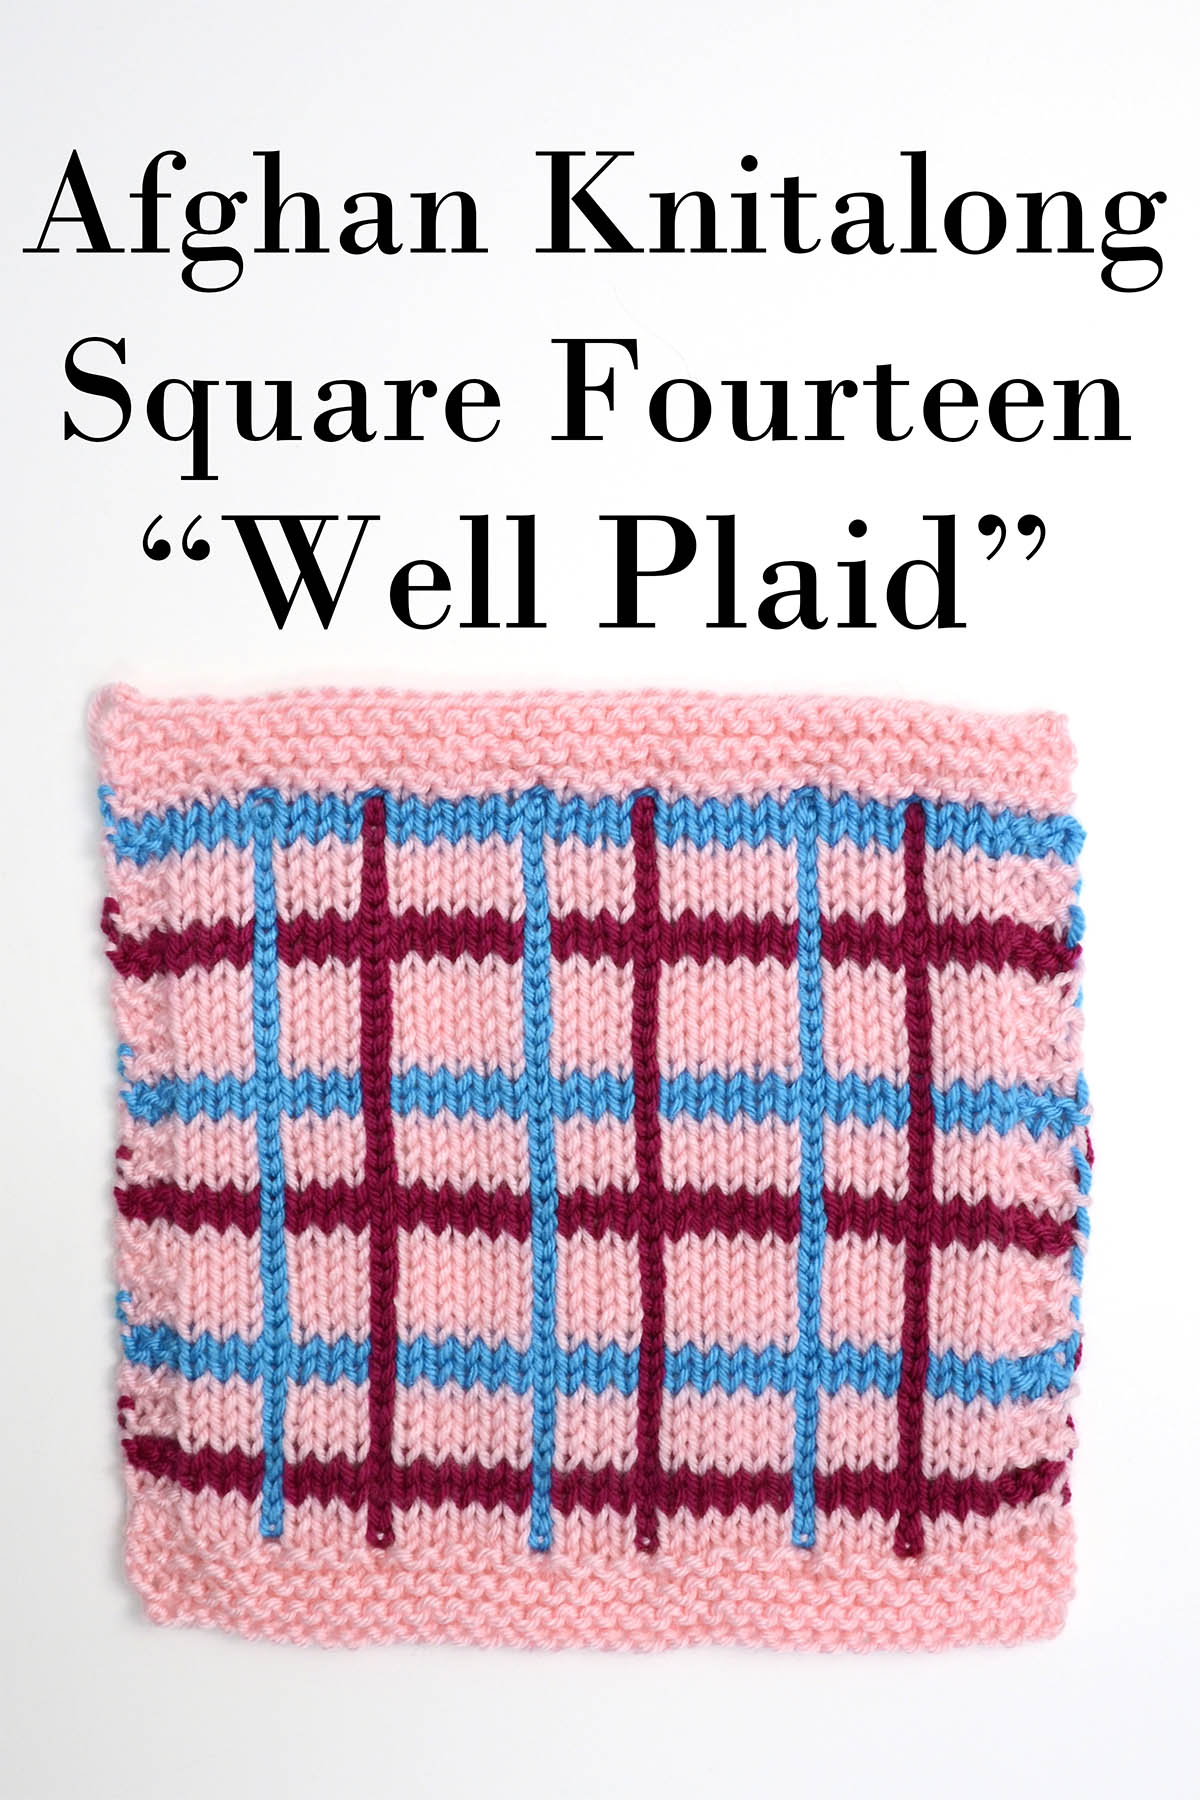 14 Well Plaid with title_blog